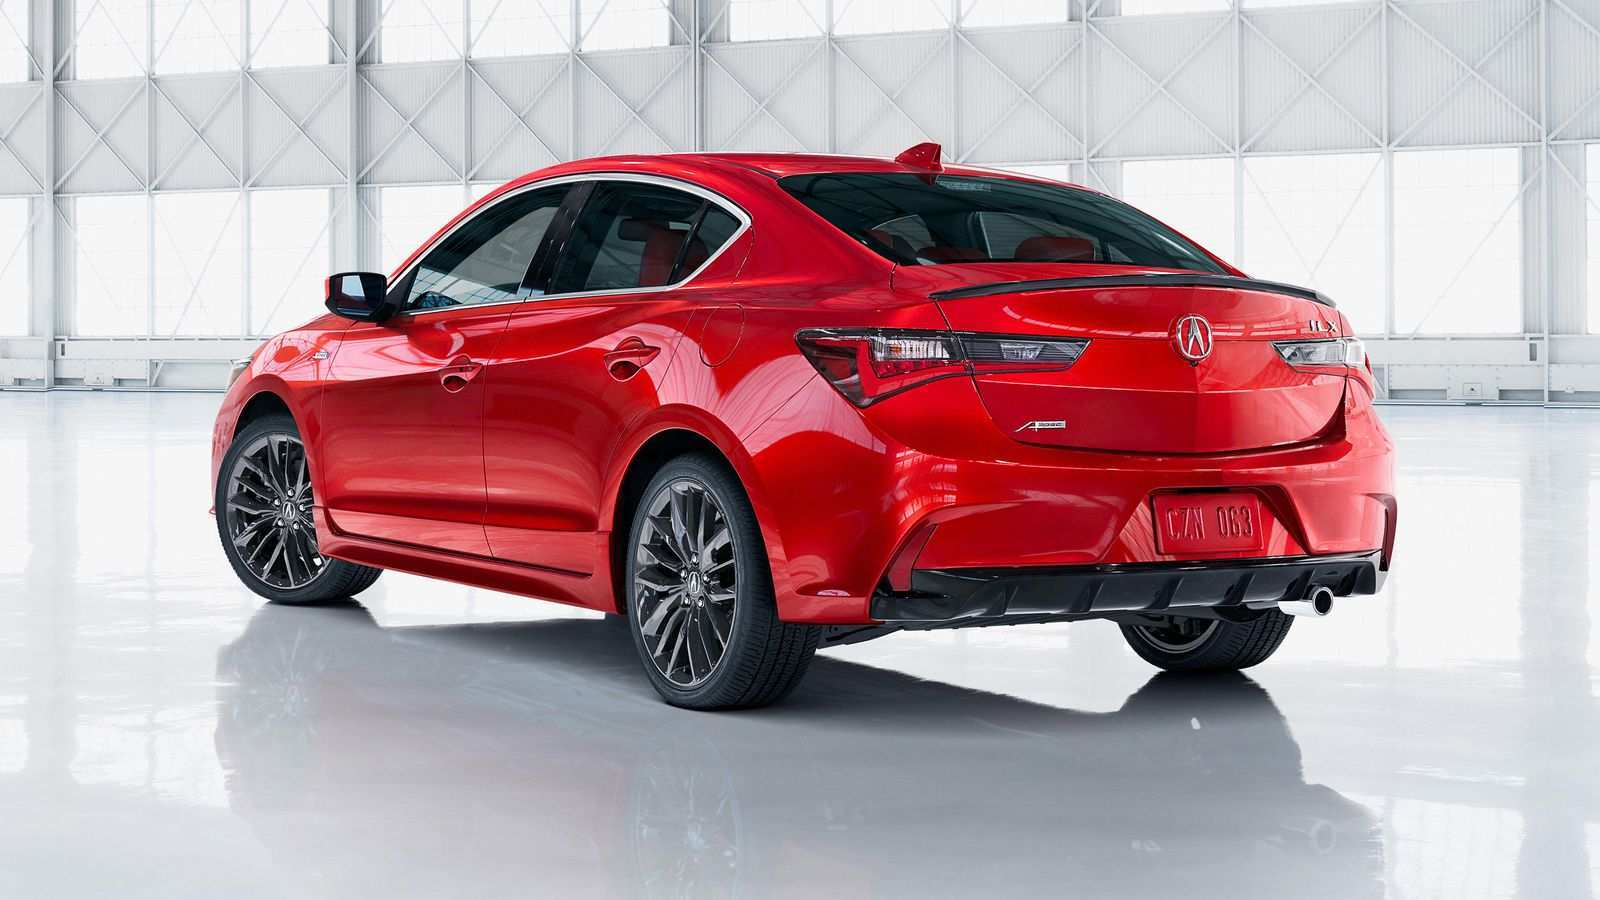 19 All New 2019 Acura Ilx Redesign Exterior And Interior